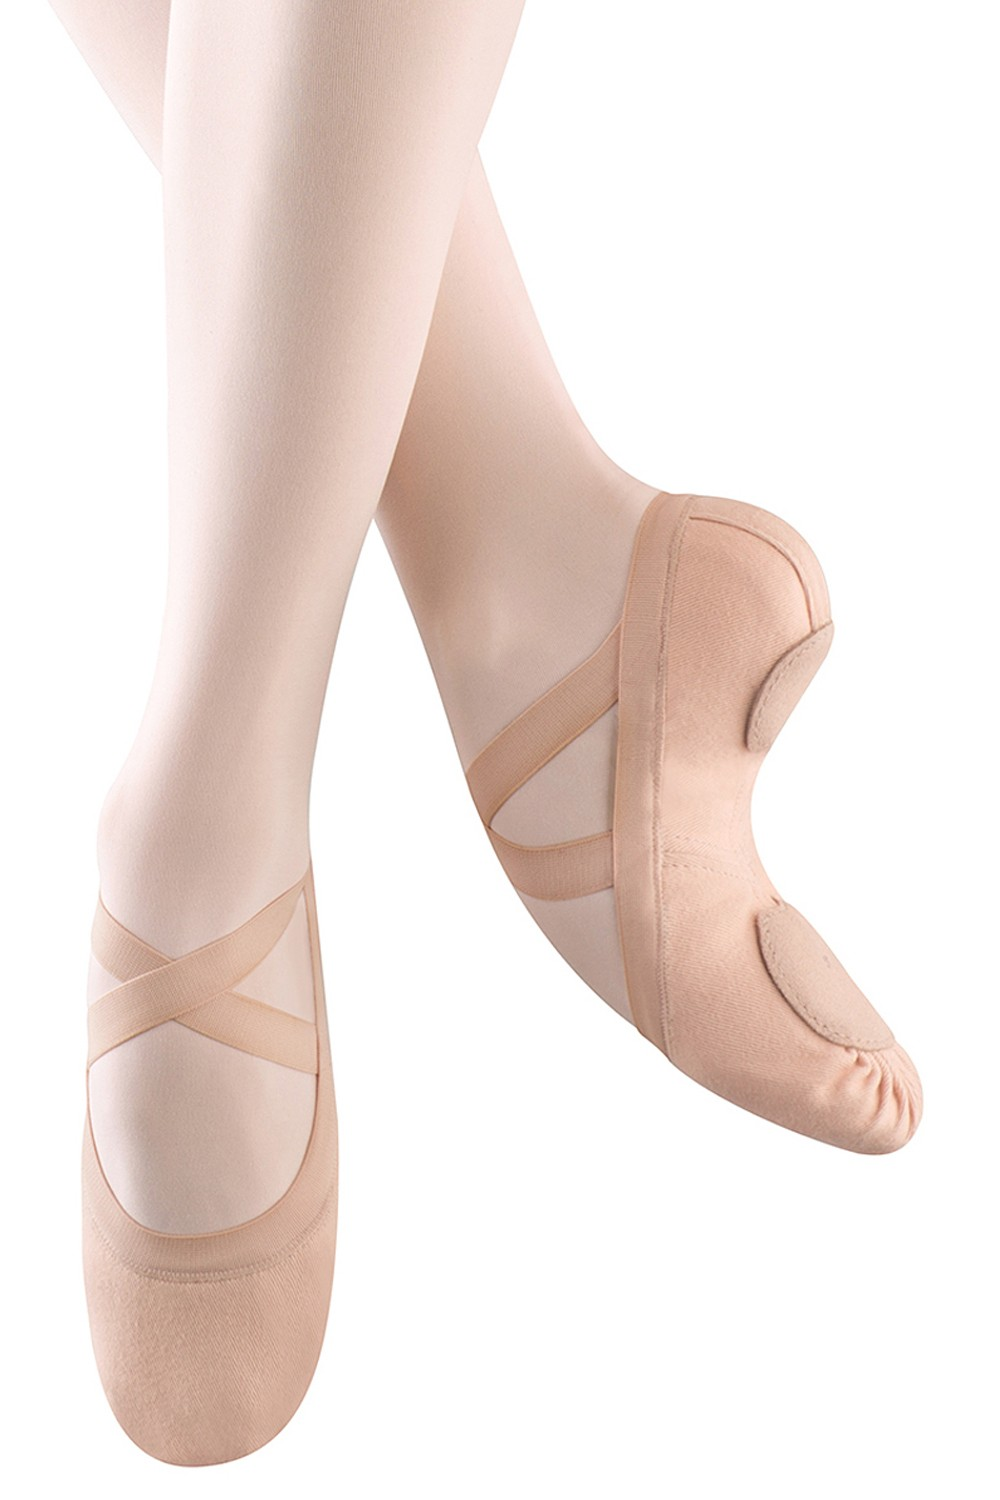 Synchrony - Bambina Girl's Ballet Shoes